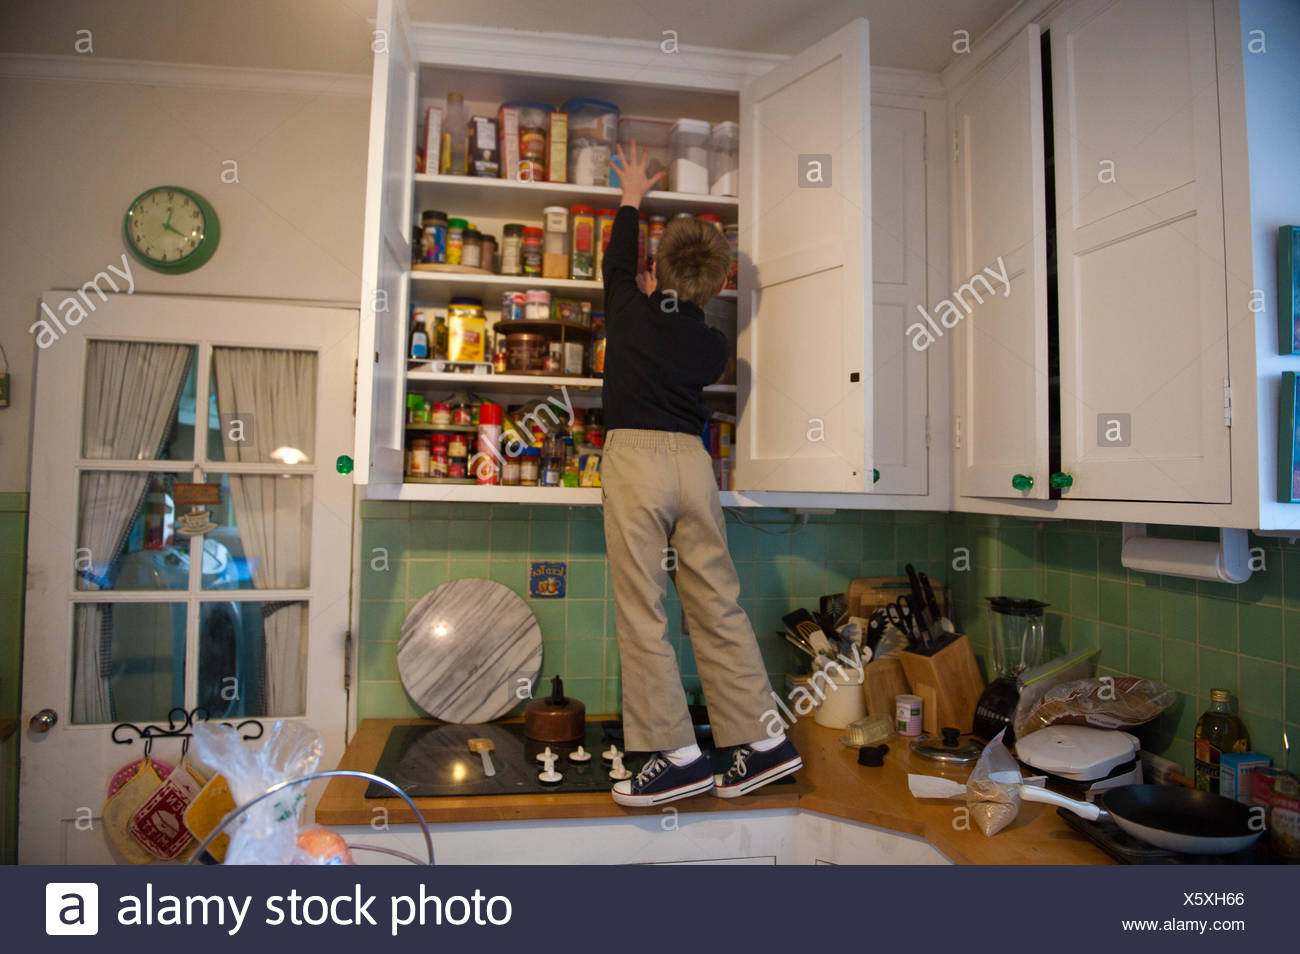 A young boy searches for goodies that are kept in a hard to reach spot at his home in Lincoln, Nebraska. - Stock Image